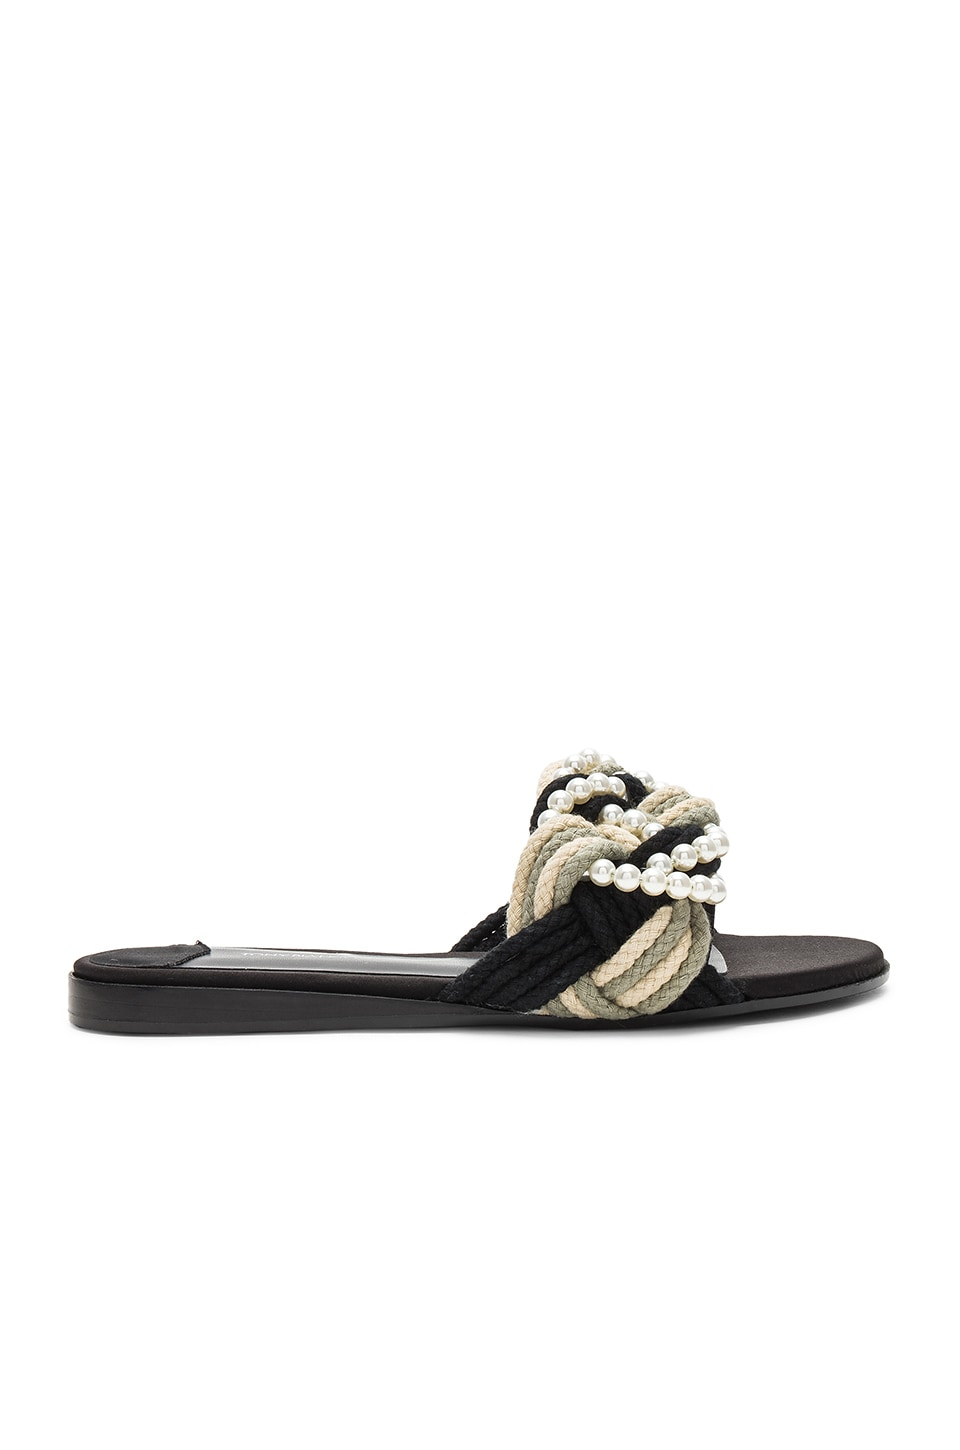 Tony Bianco Josie Slide in Rope & Pearl Combo